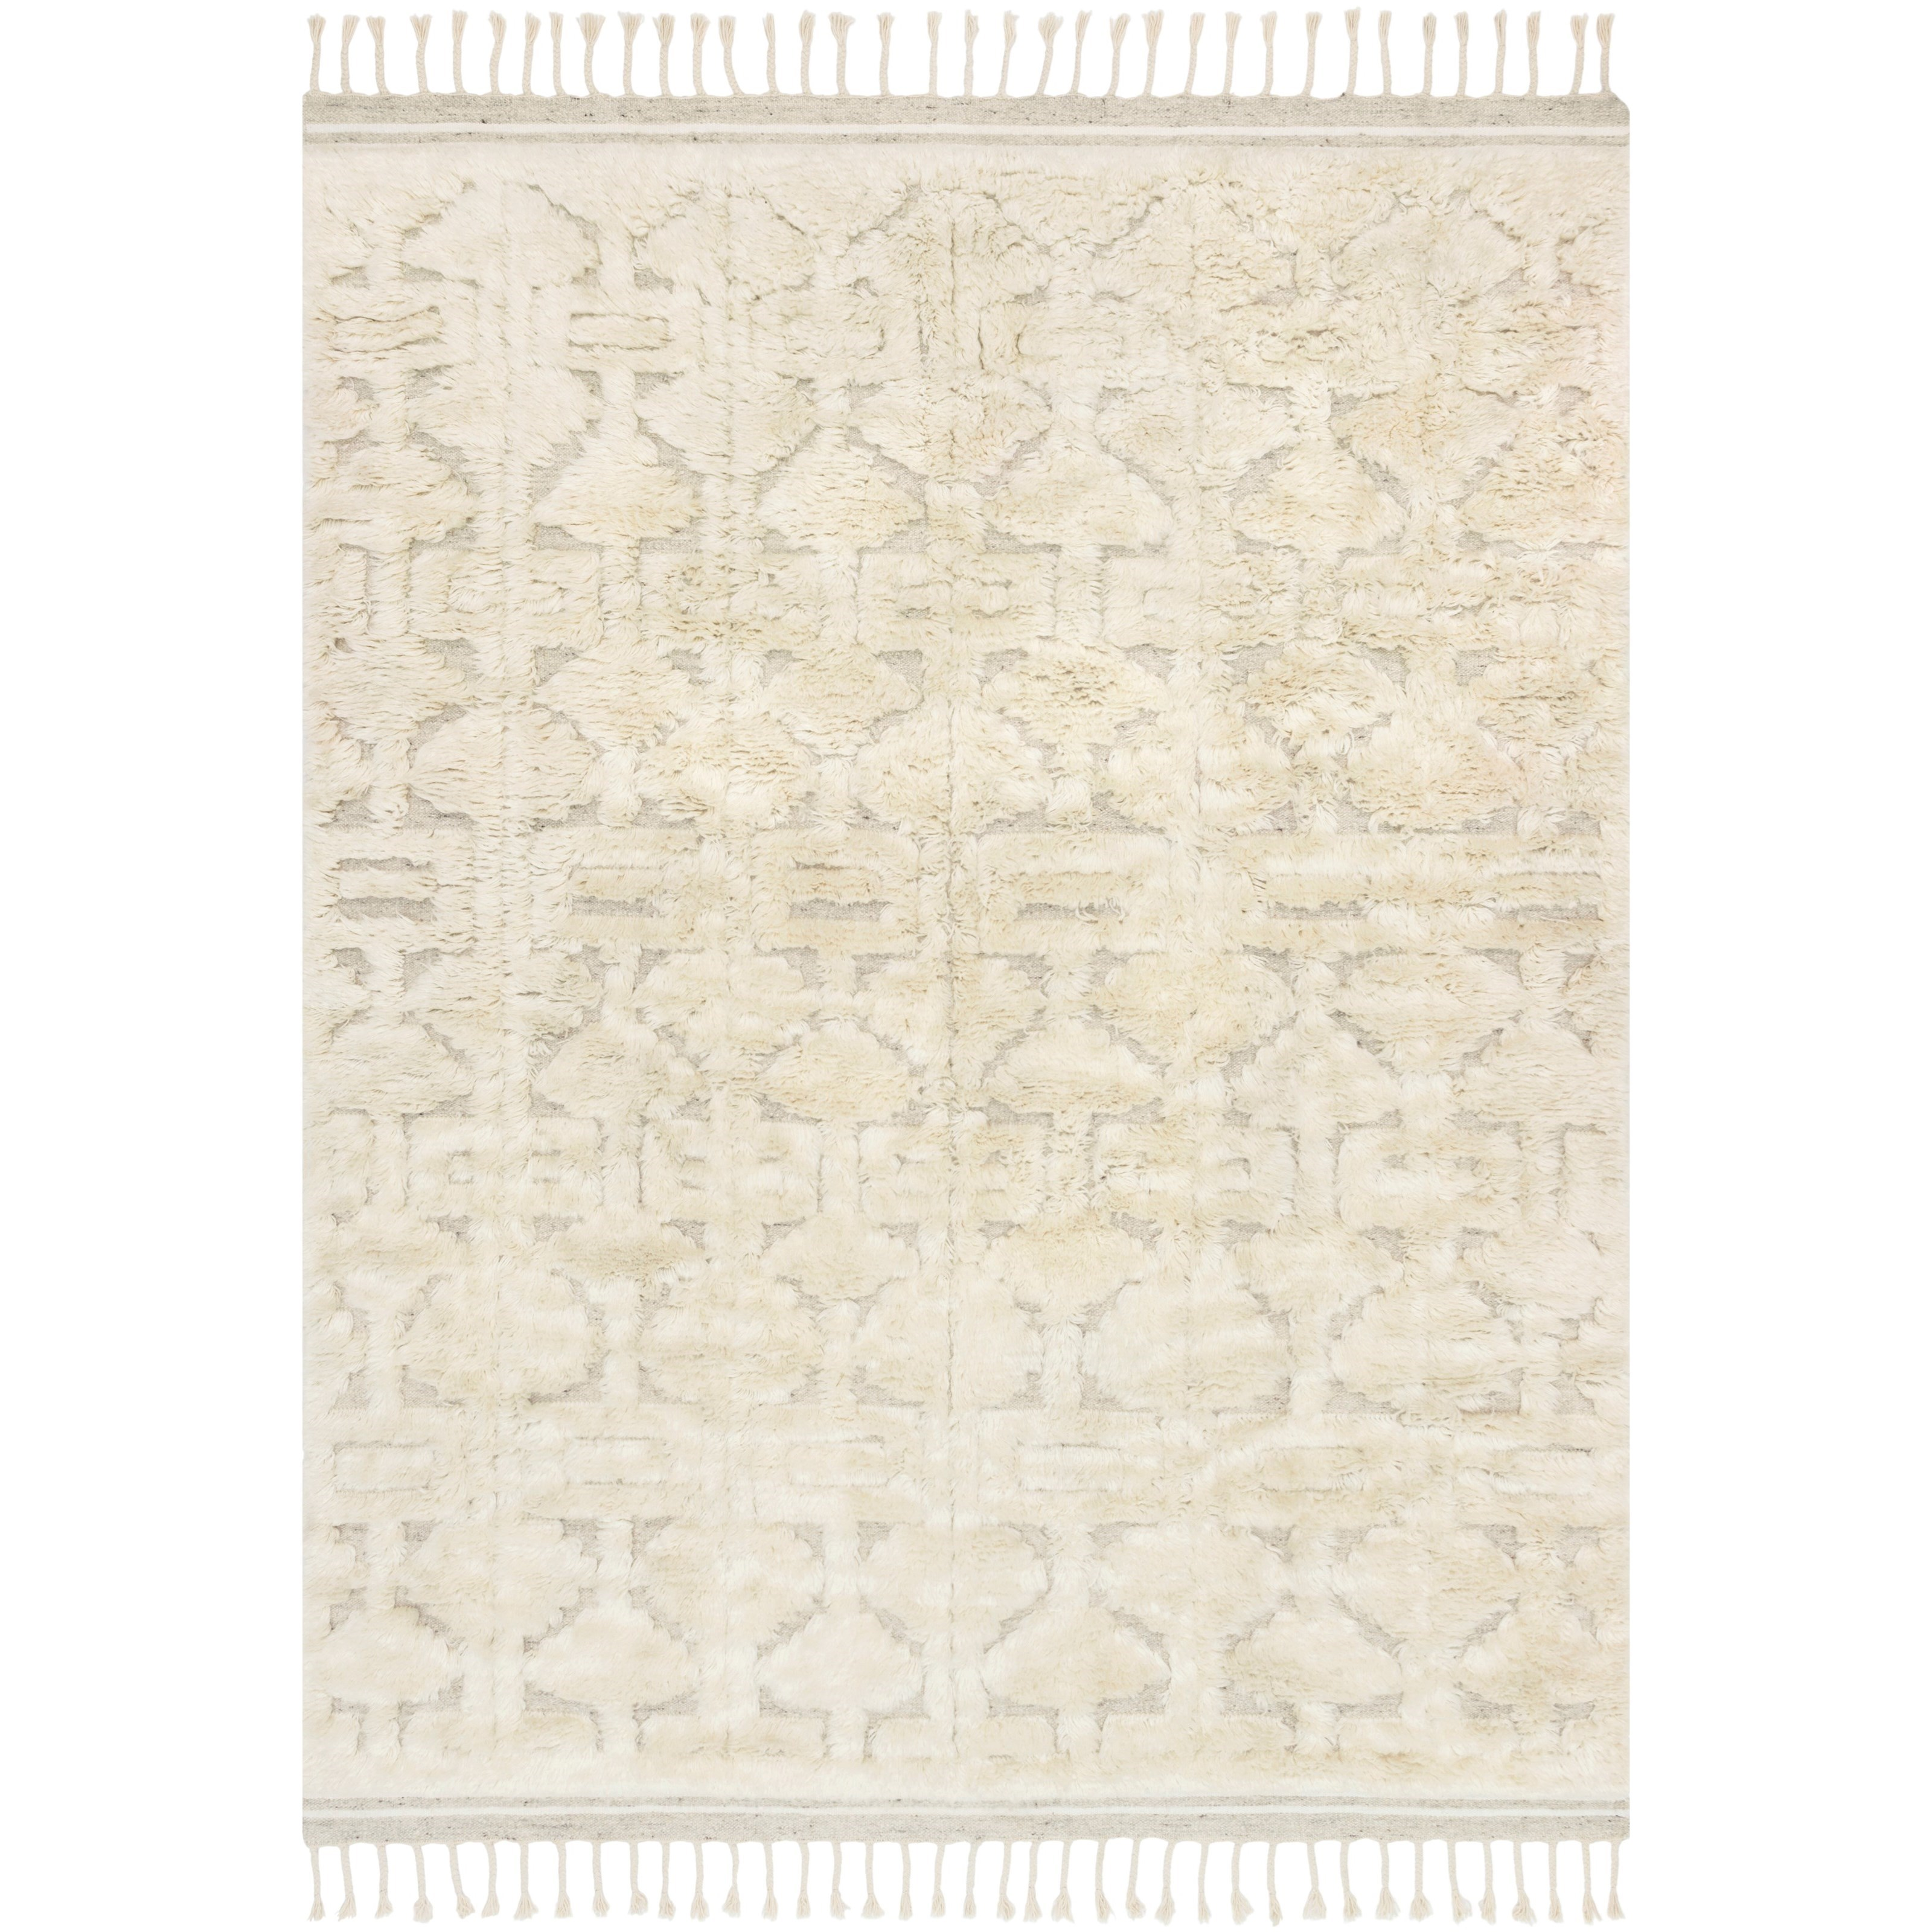 """Hygge 5'6"""" x 8'6"""" Oatmeal / Ivory Rug by Loloi Rugs at Virginia Furniture Market"""